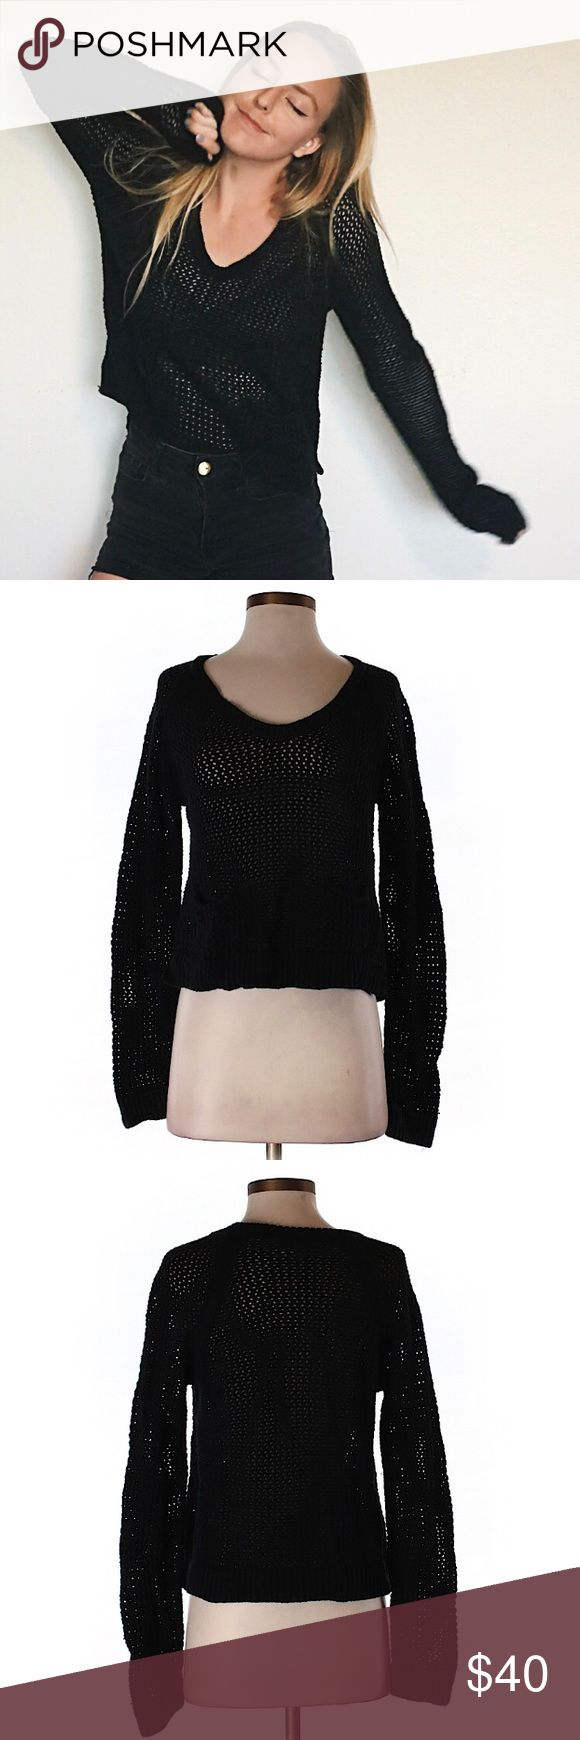 C&C CA sweater Sweater weather, baby! Can't get enough of that gorgeous crochet detailing and inky black shade. This is sucha wonderful staple for any wardrobe- & it's in wonderful condition❣️ C&C California Sweaters